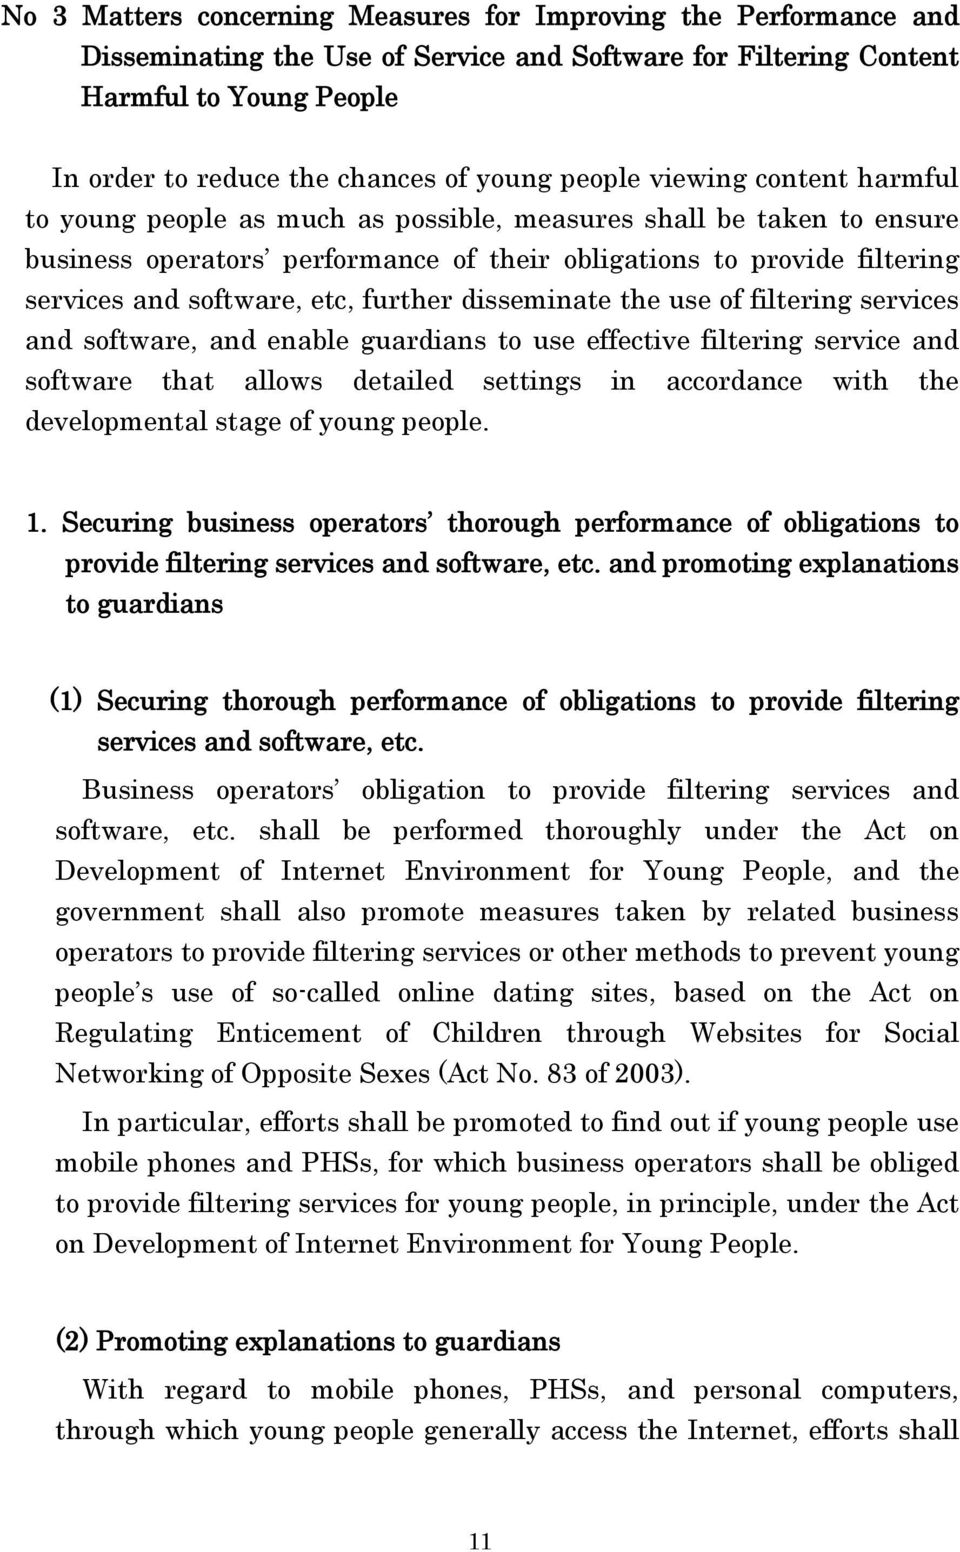 etc, further disseminate the use of filtering services and software, and enable guardians to use effective filtering service and software that allows detailed settings in accordance with the